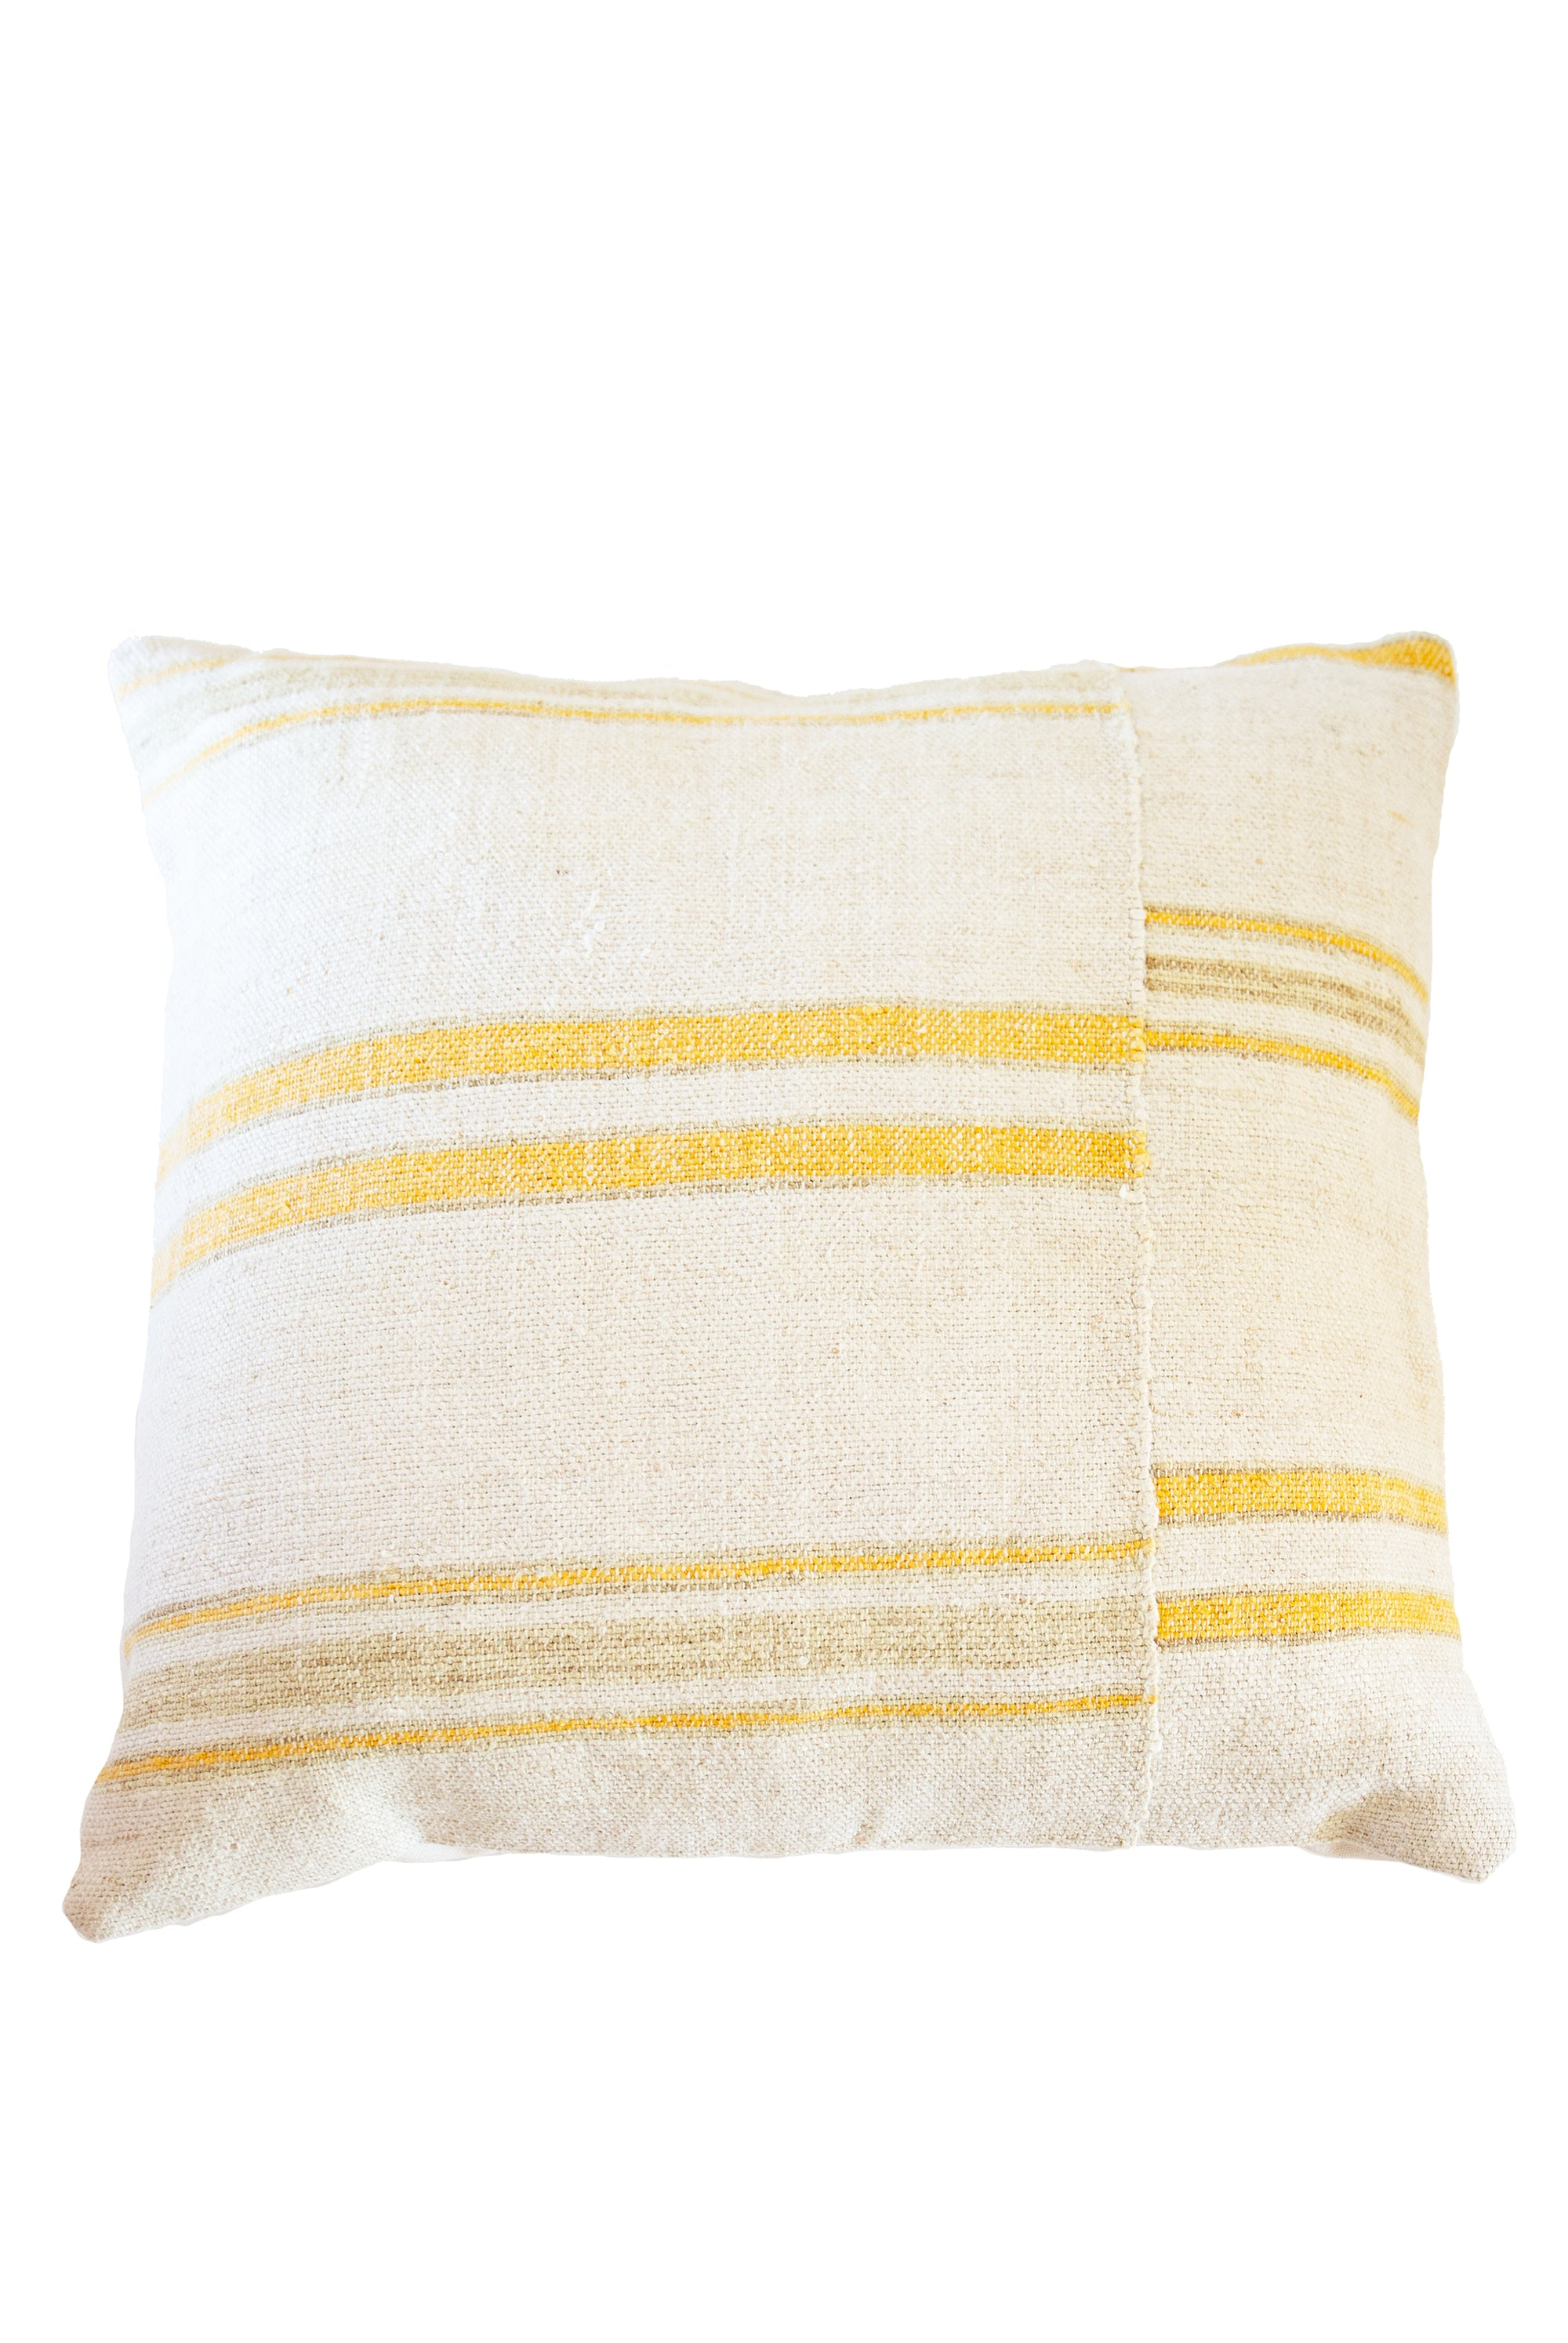 Lighthouse Turkish Kilim Cushion